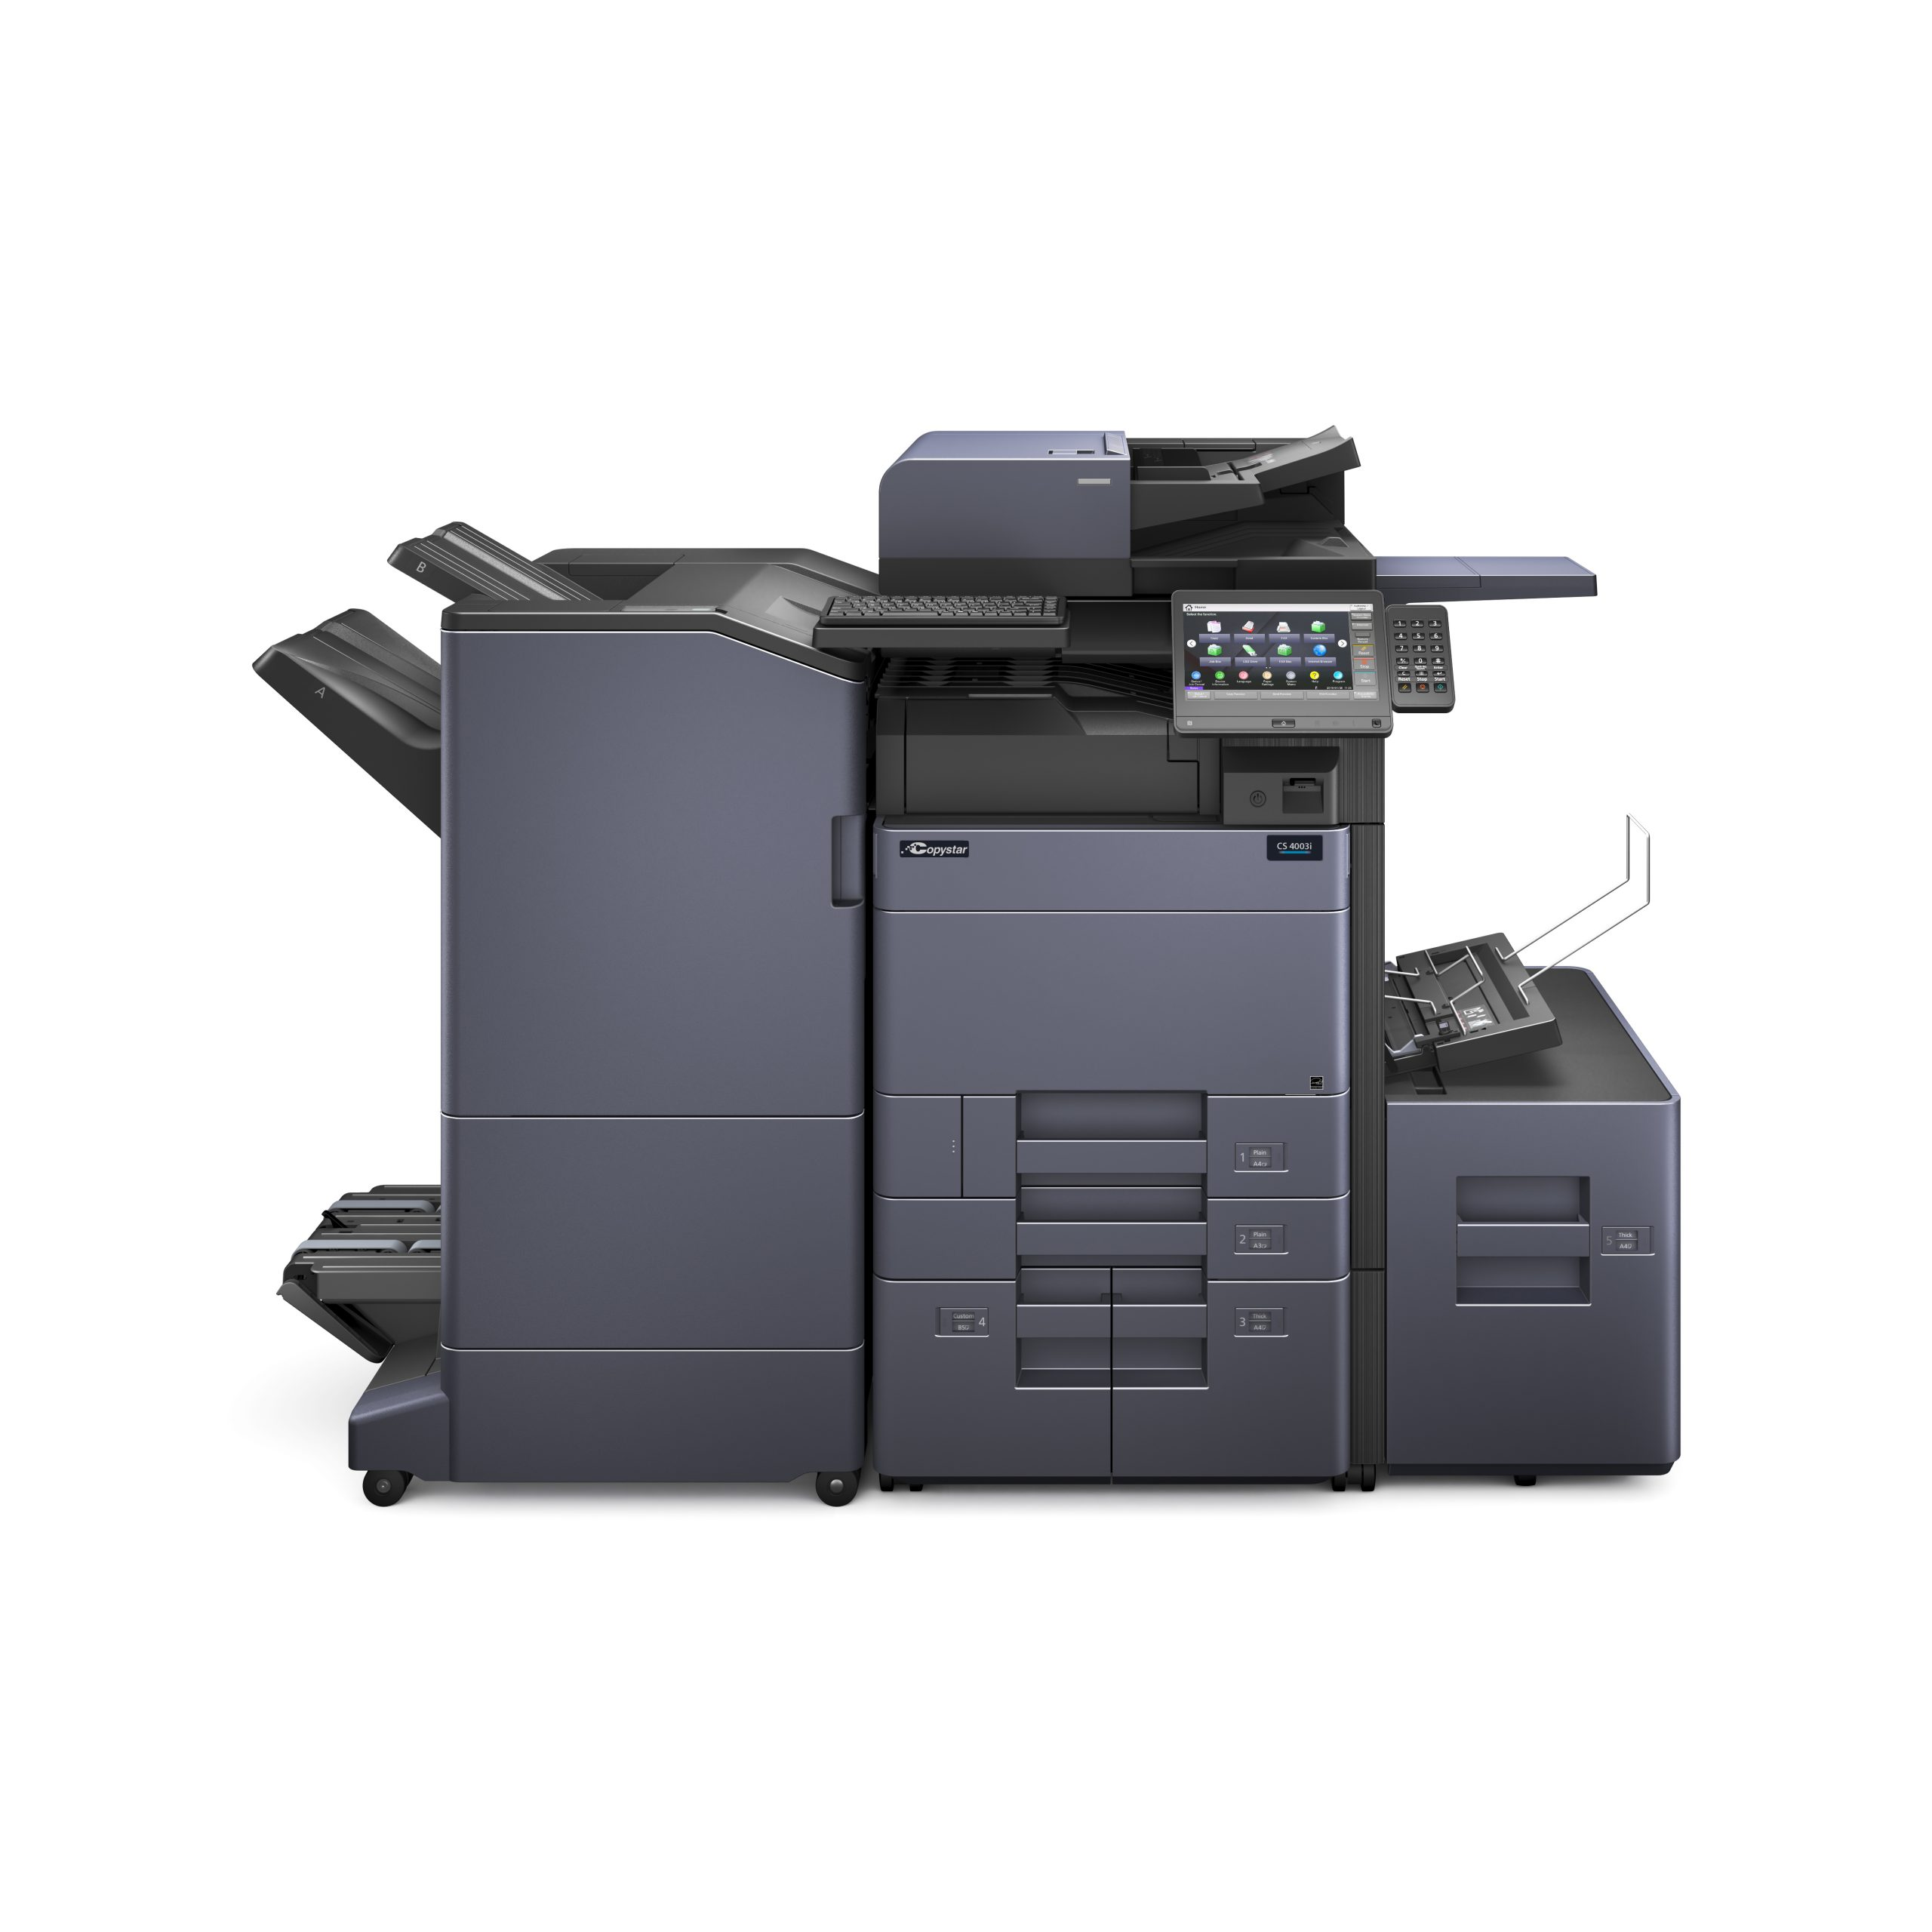 kyocera CS_4003i Copier Rental Companies Minnesota